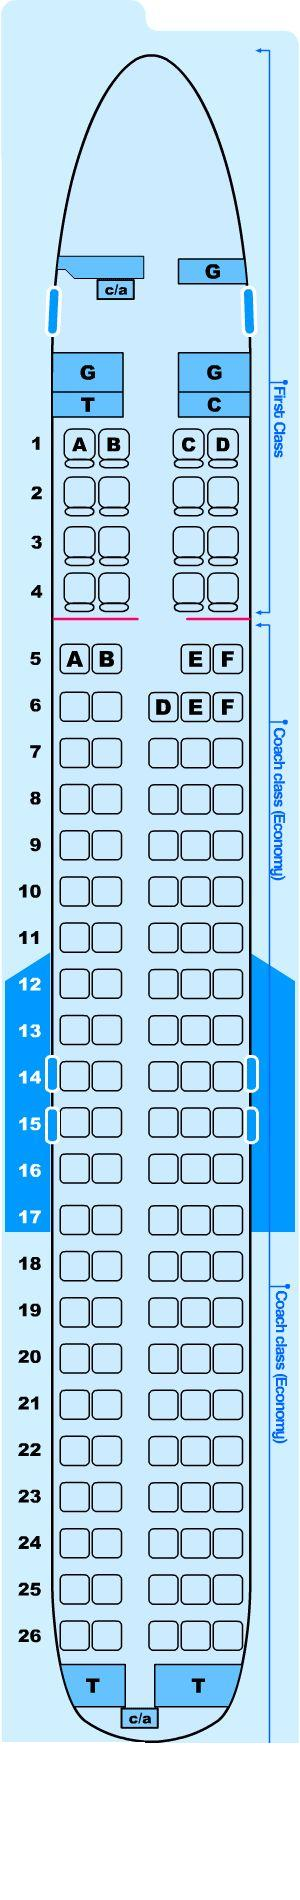 Seat map for Northwest Airlines McDonnell Douglas DC9-50